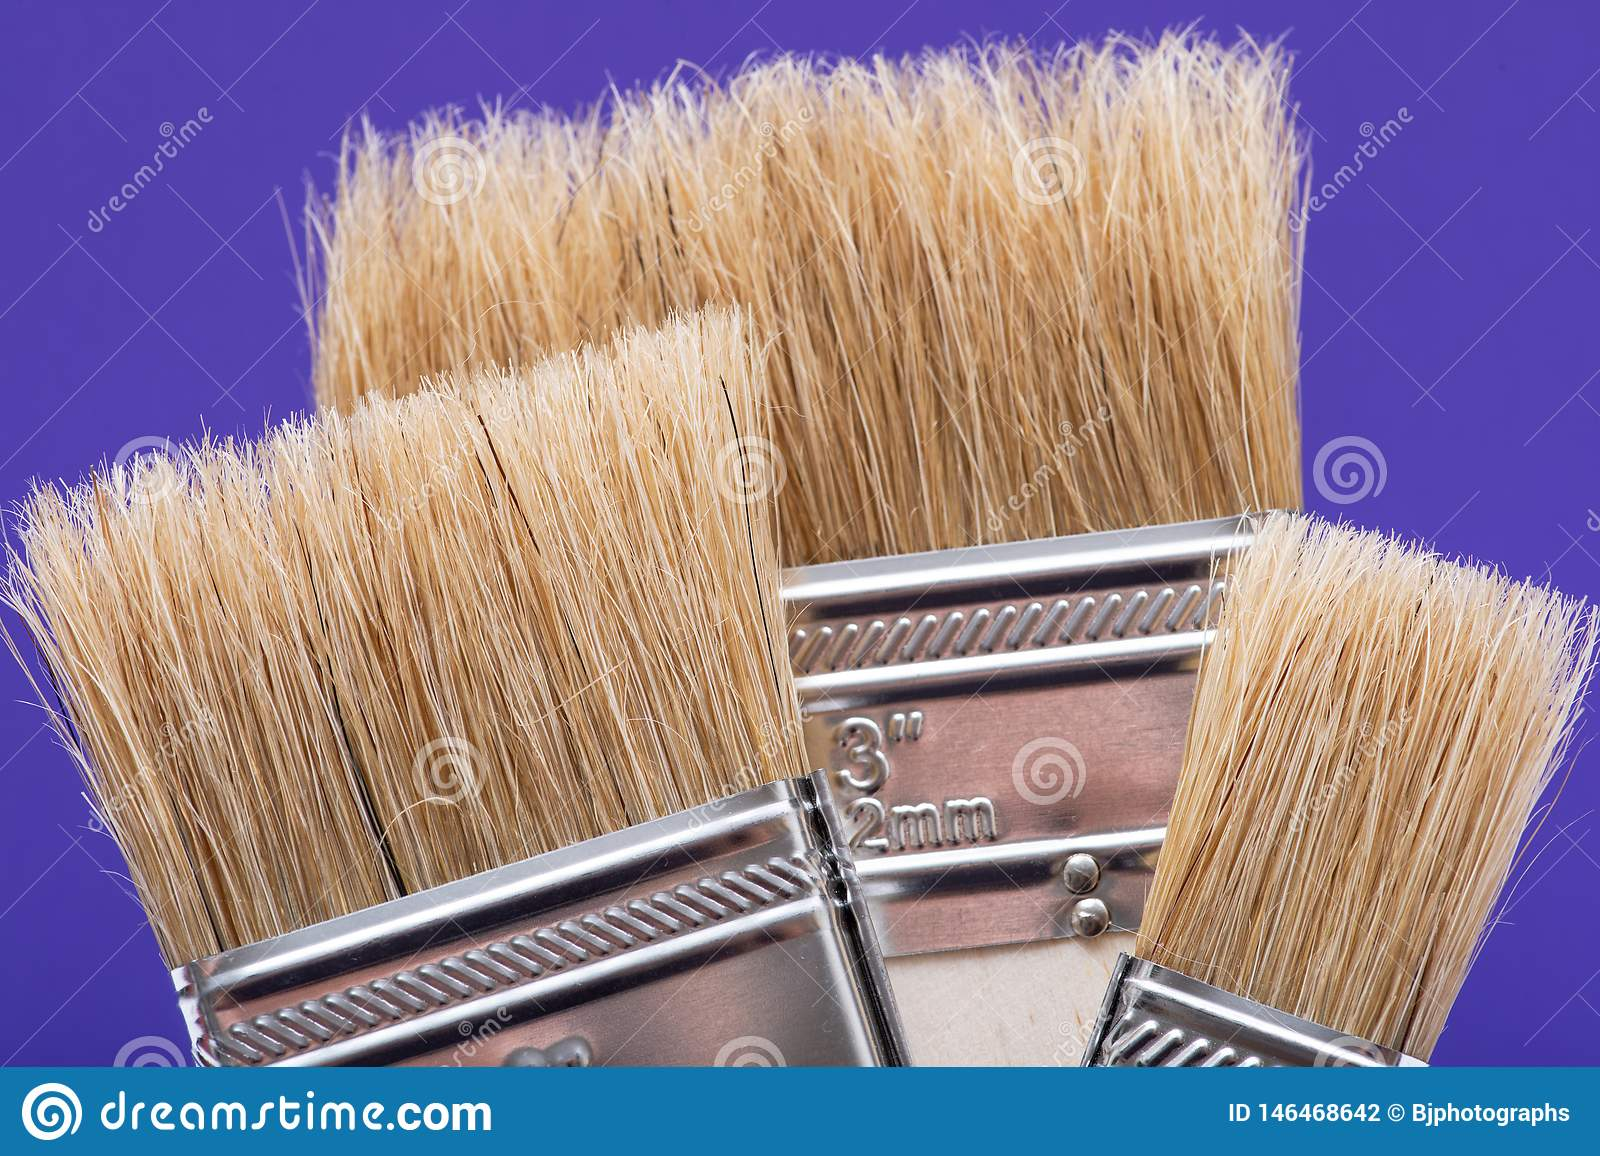 Flat Chip Painting Brush isolated on purple